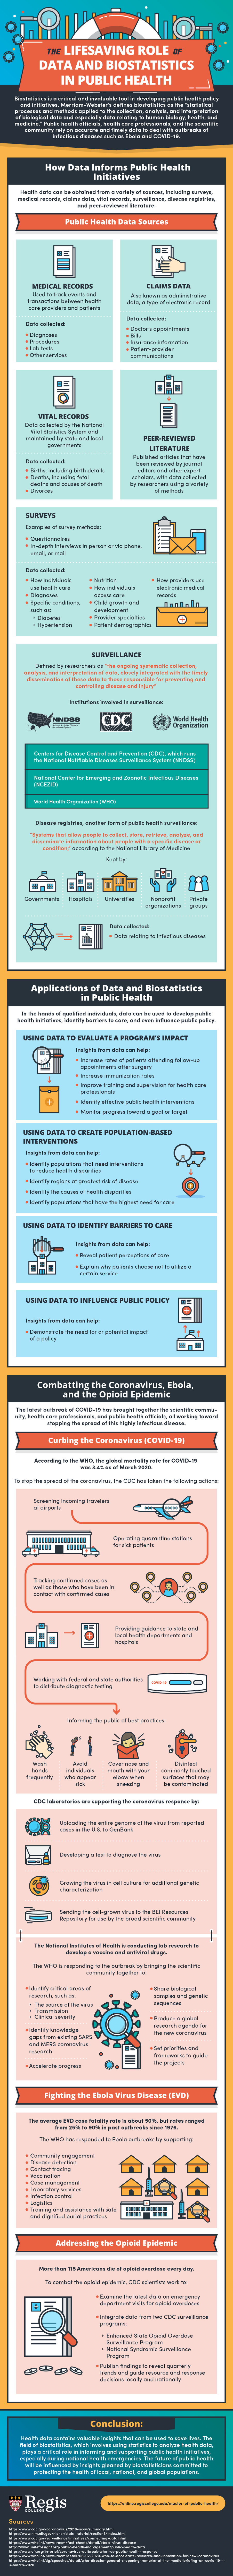 How biostatistics can inform ways to fight infectious diseases and public health crises.